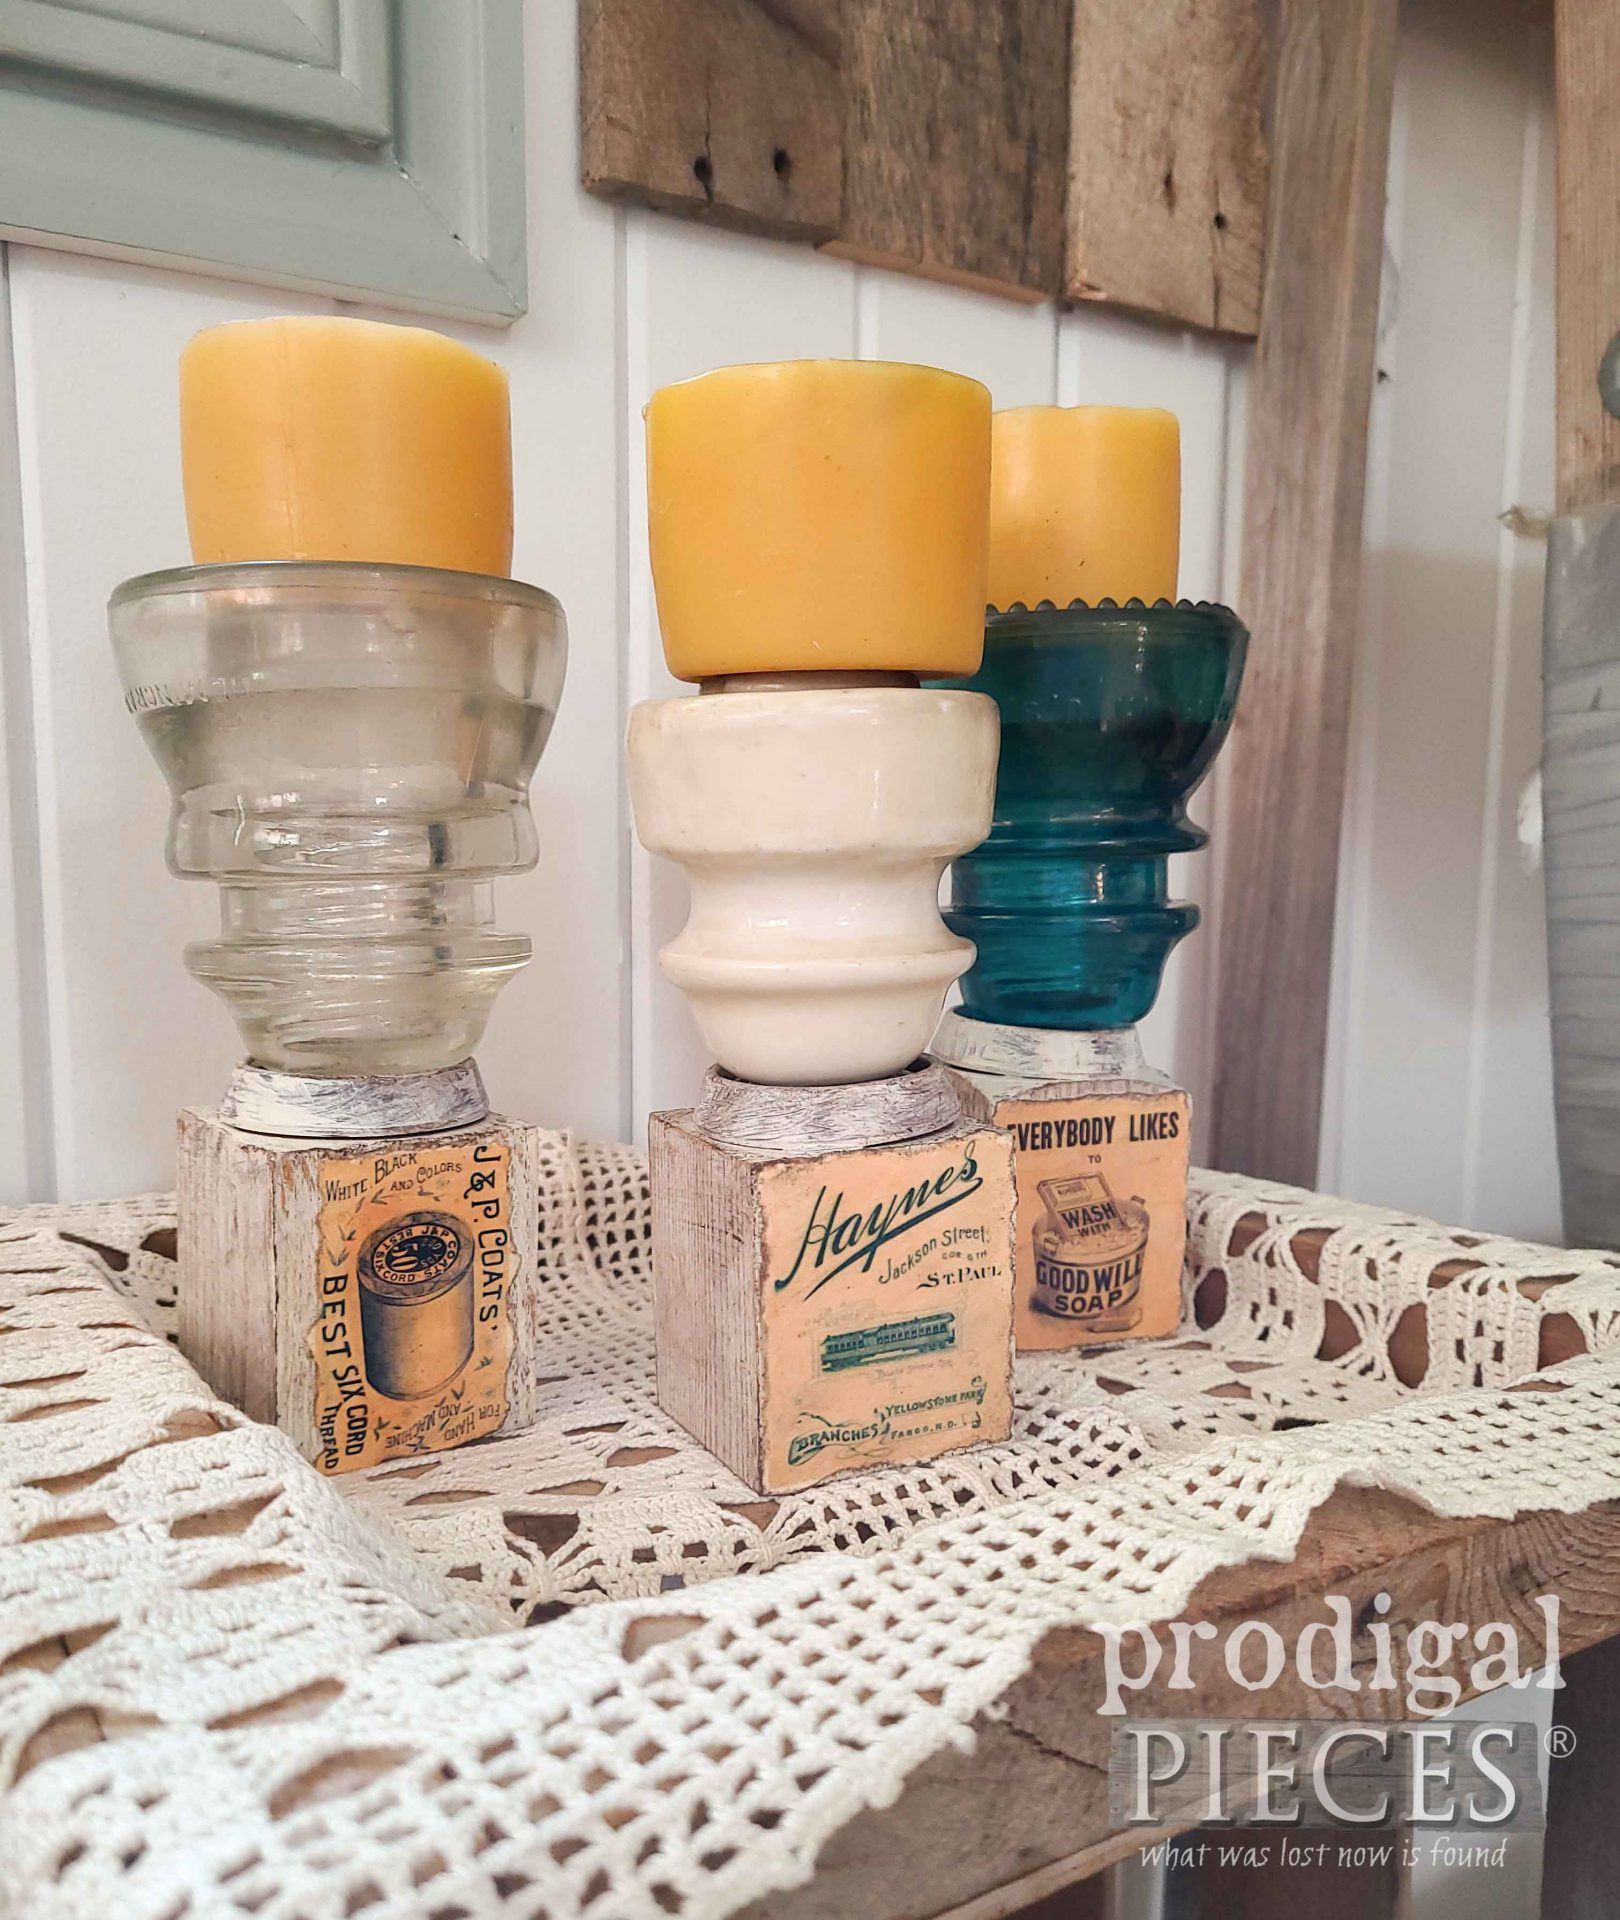 Farmhouse Candle Holders made with Upcycled Antique Insulators by Larissa of Prodigal Pieces | prodigalpieces.com #prodigalpieces #diy #handmade #farmhouse #upcycled #home #homedecor